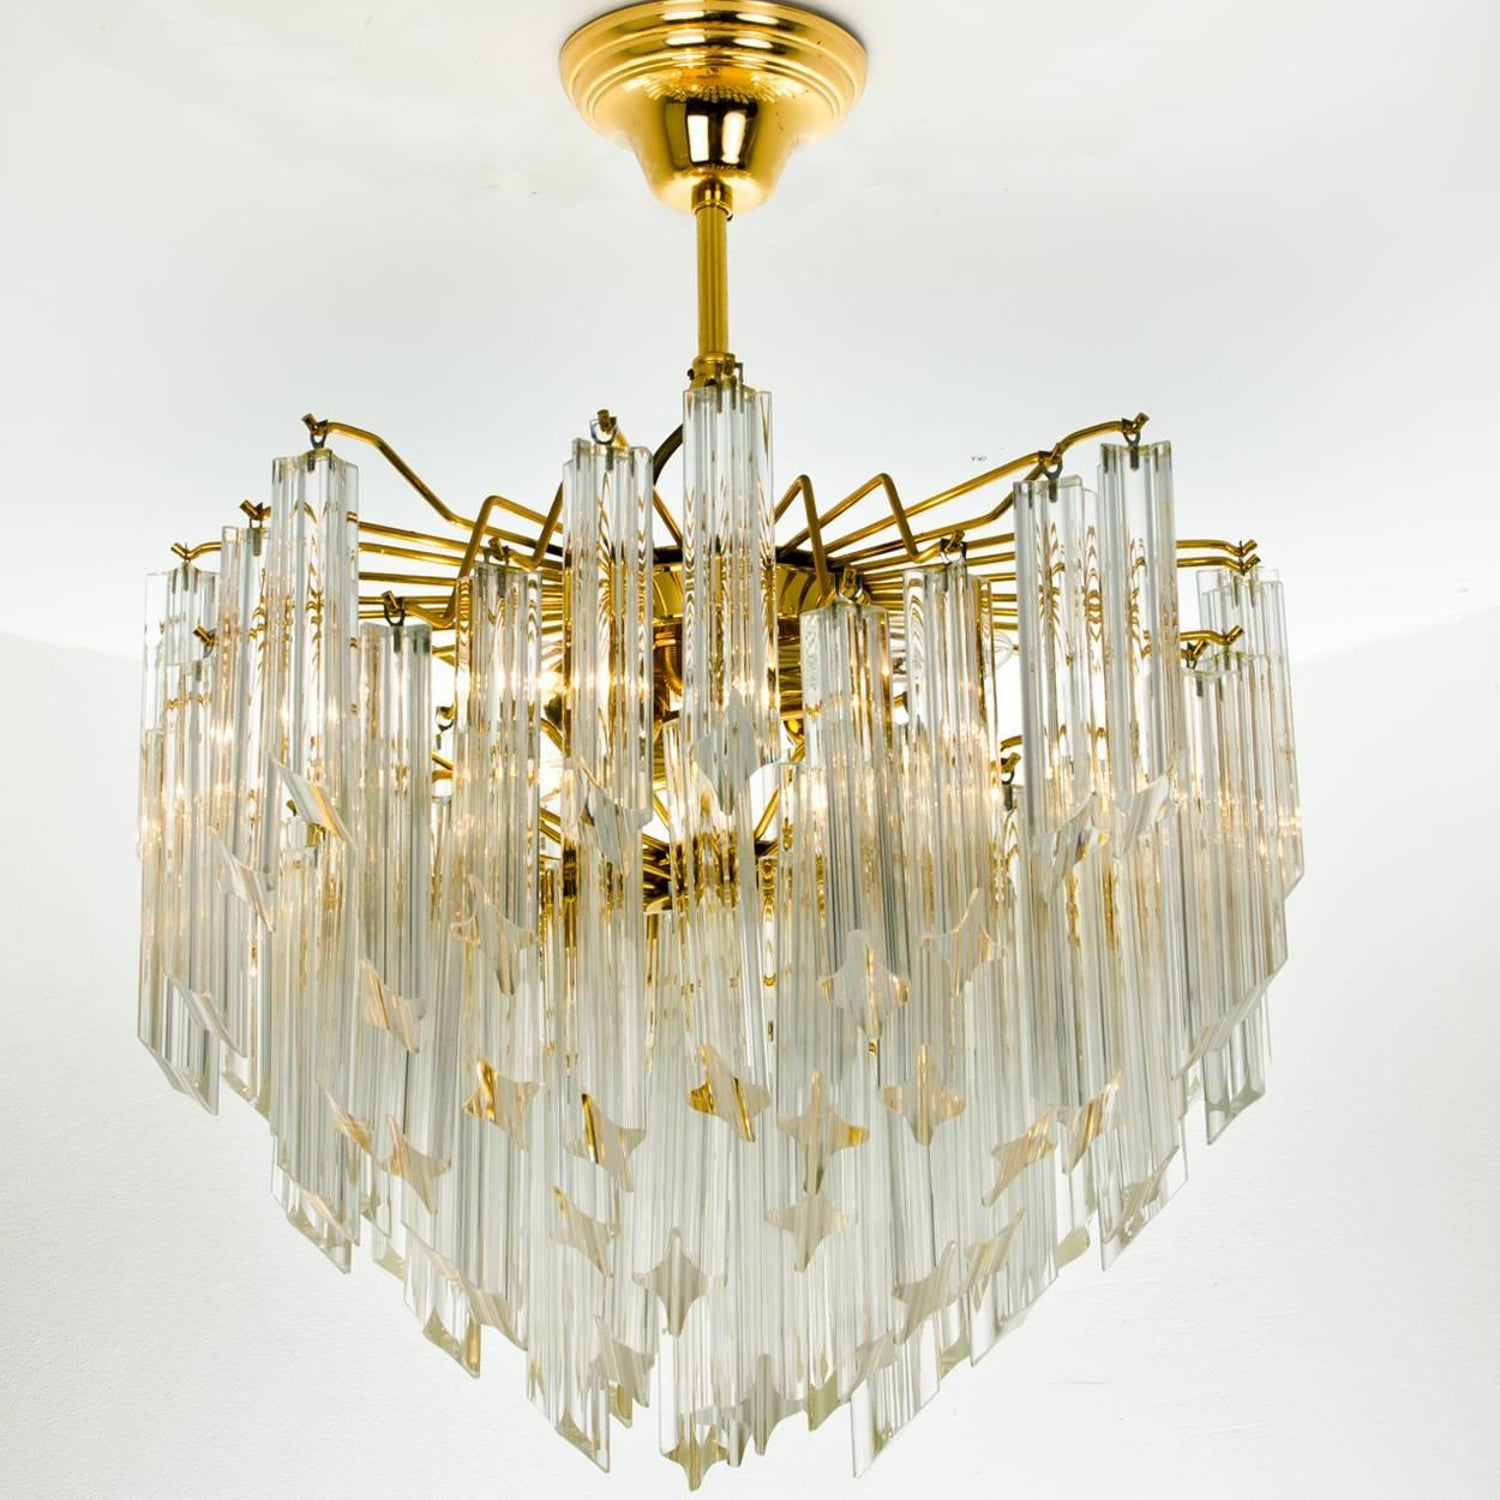 Large three tier cristal venini chandelier 1960 for sale at 1stdibs arubaitofo Gallery